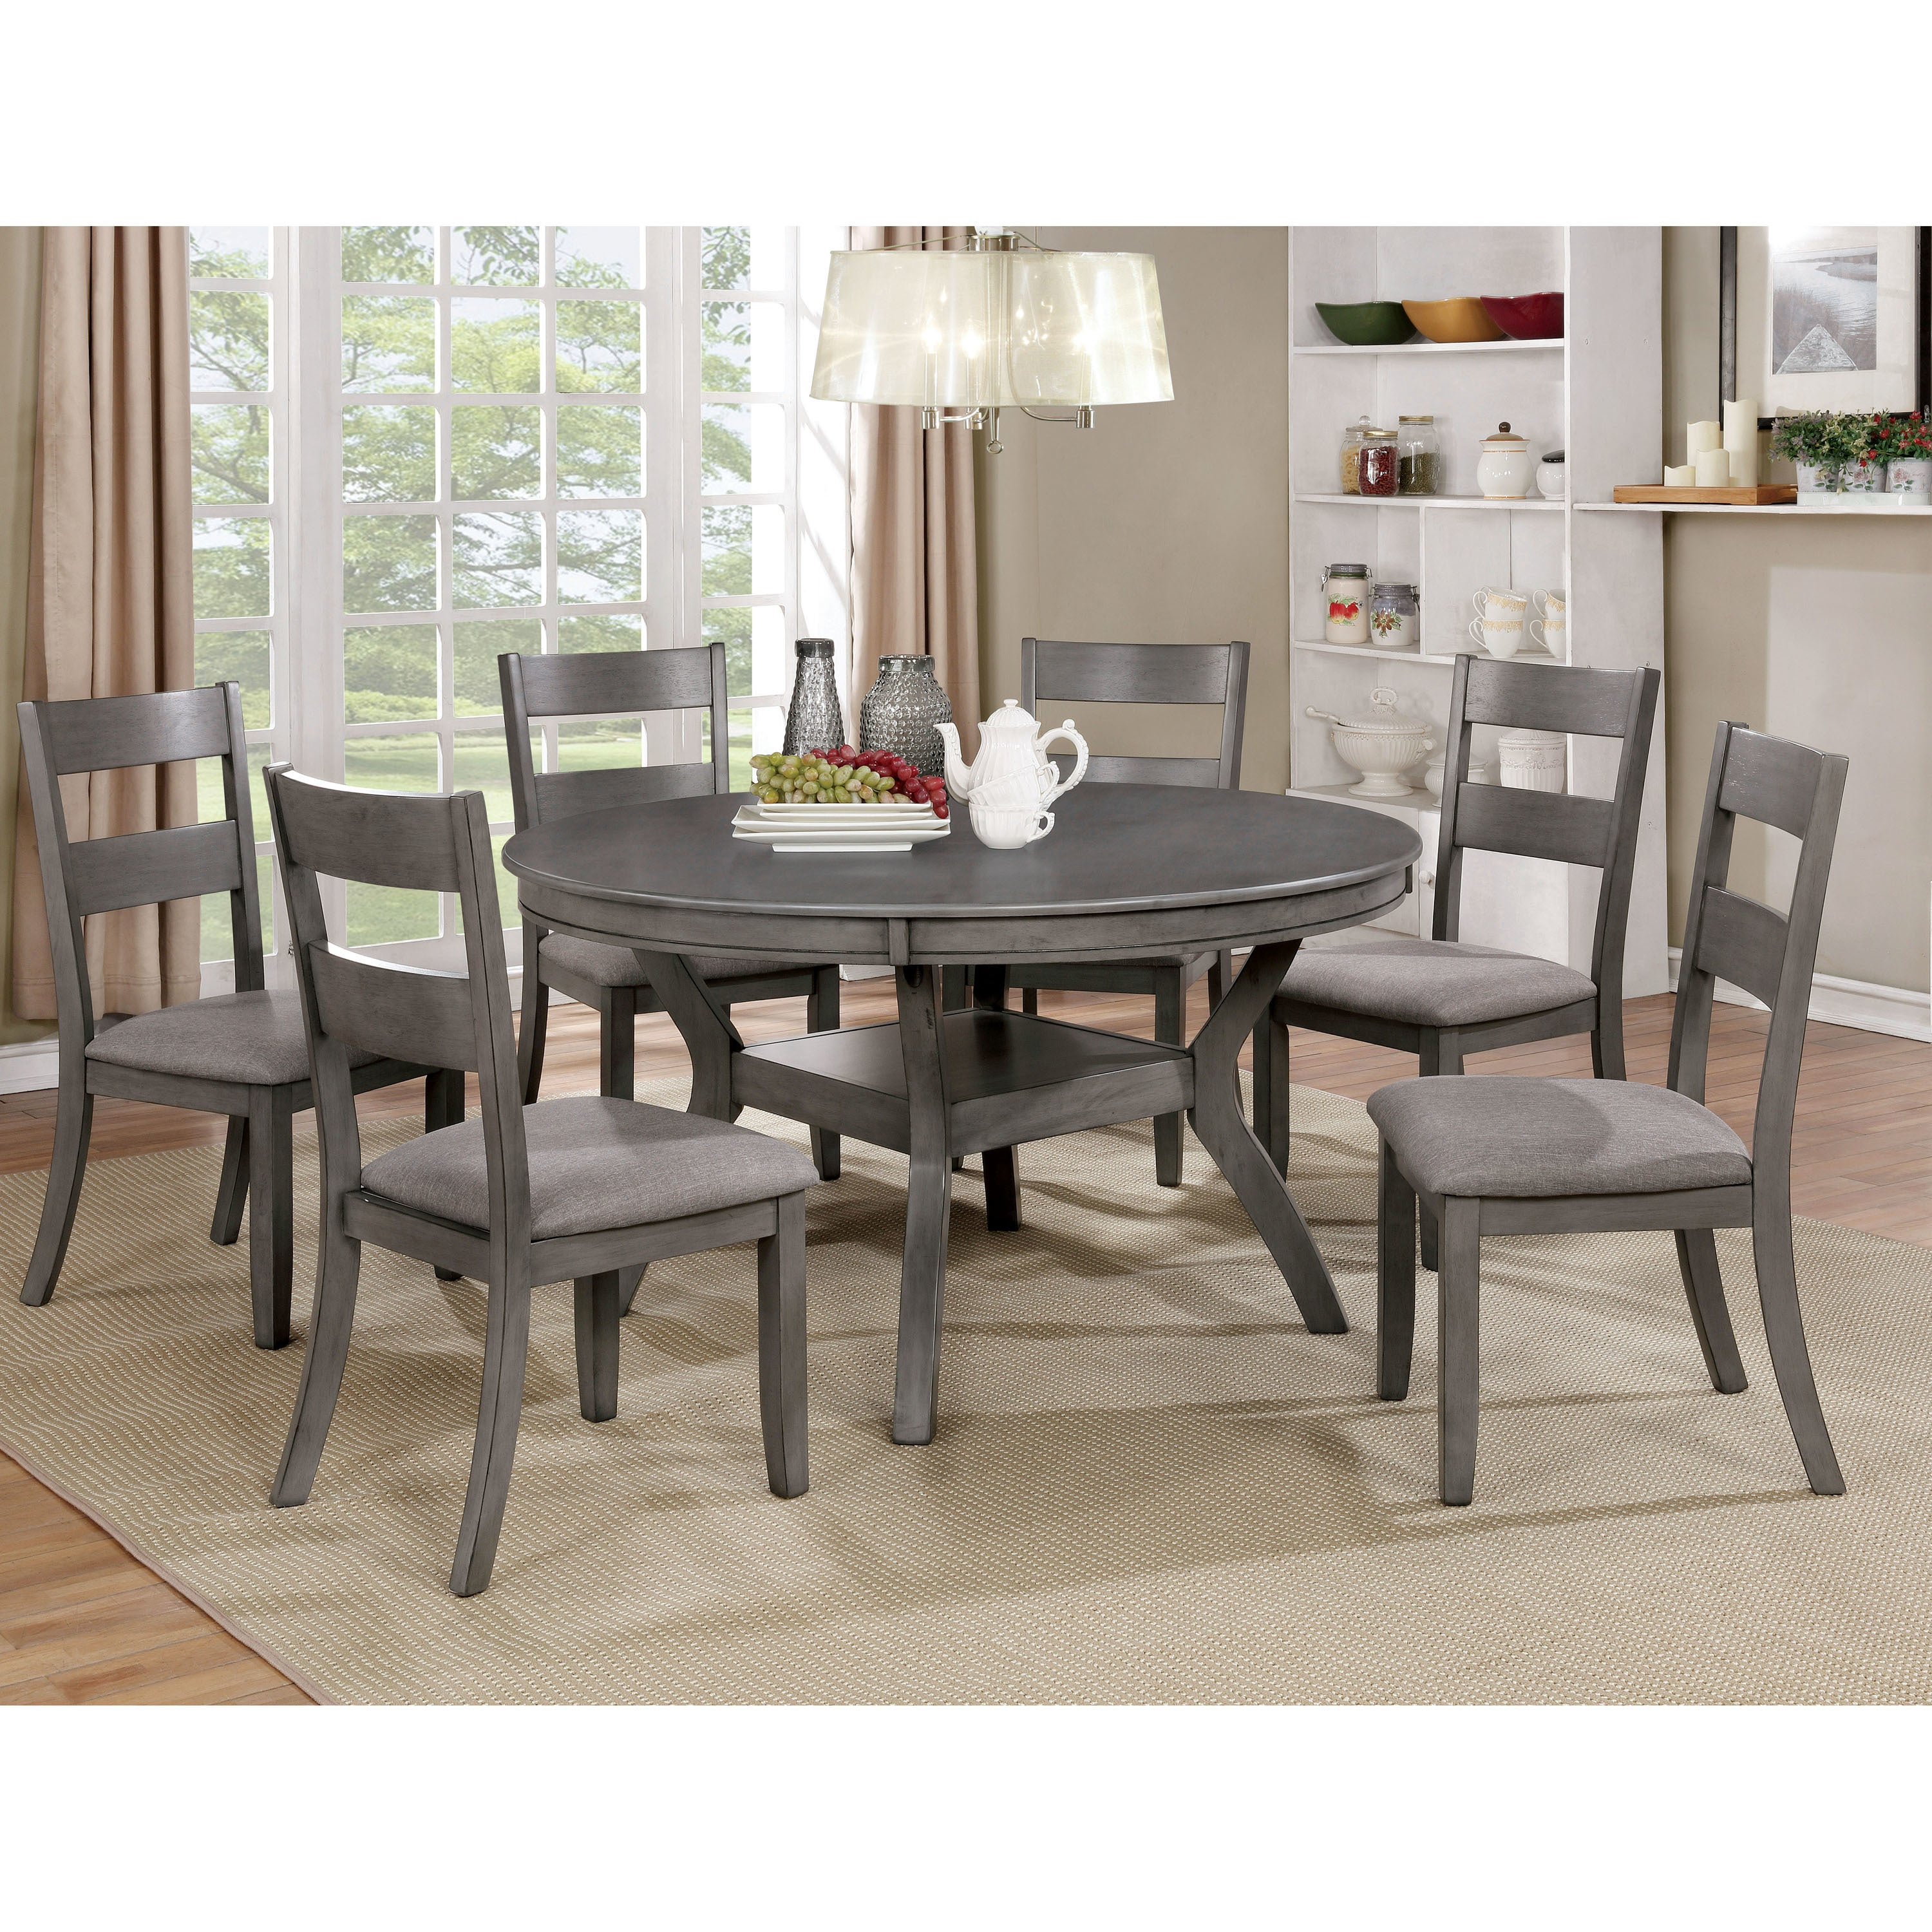 Shop furniture of america relia transitional 54 inch round dining table on sale free shipping today overstock com 19998656